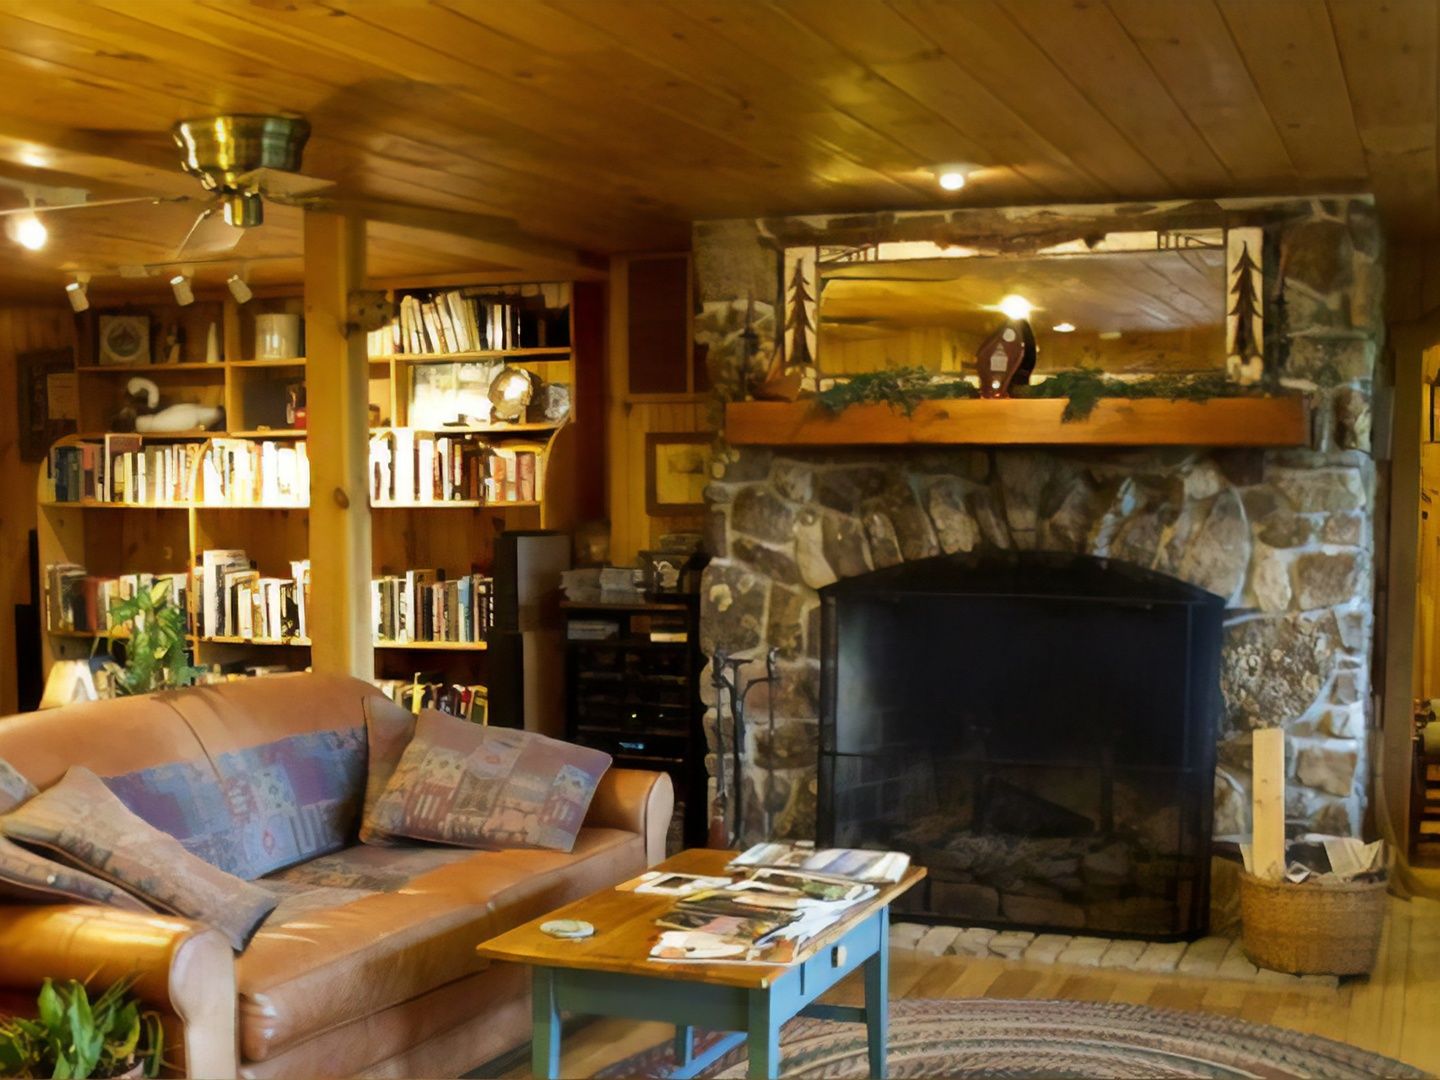 A fire place sitting in a living room filled with furniture and a fireplace at North Fork Mountain Inn Bed & Breakfast.